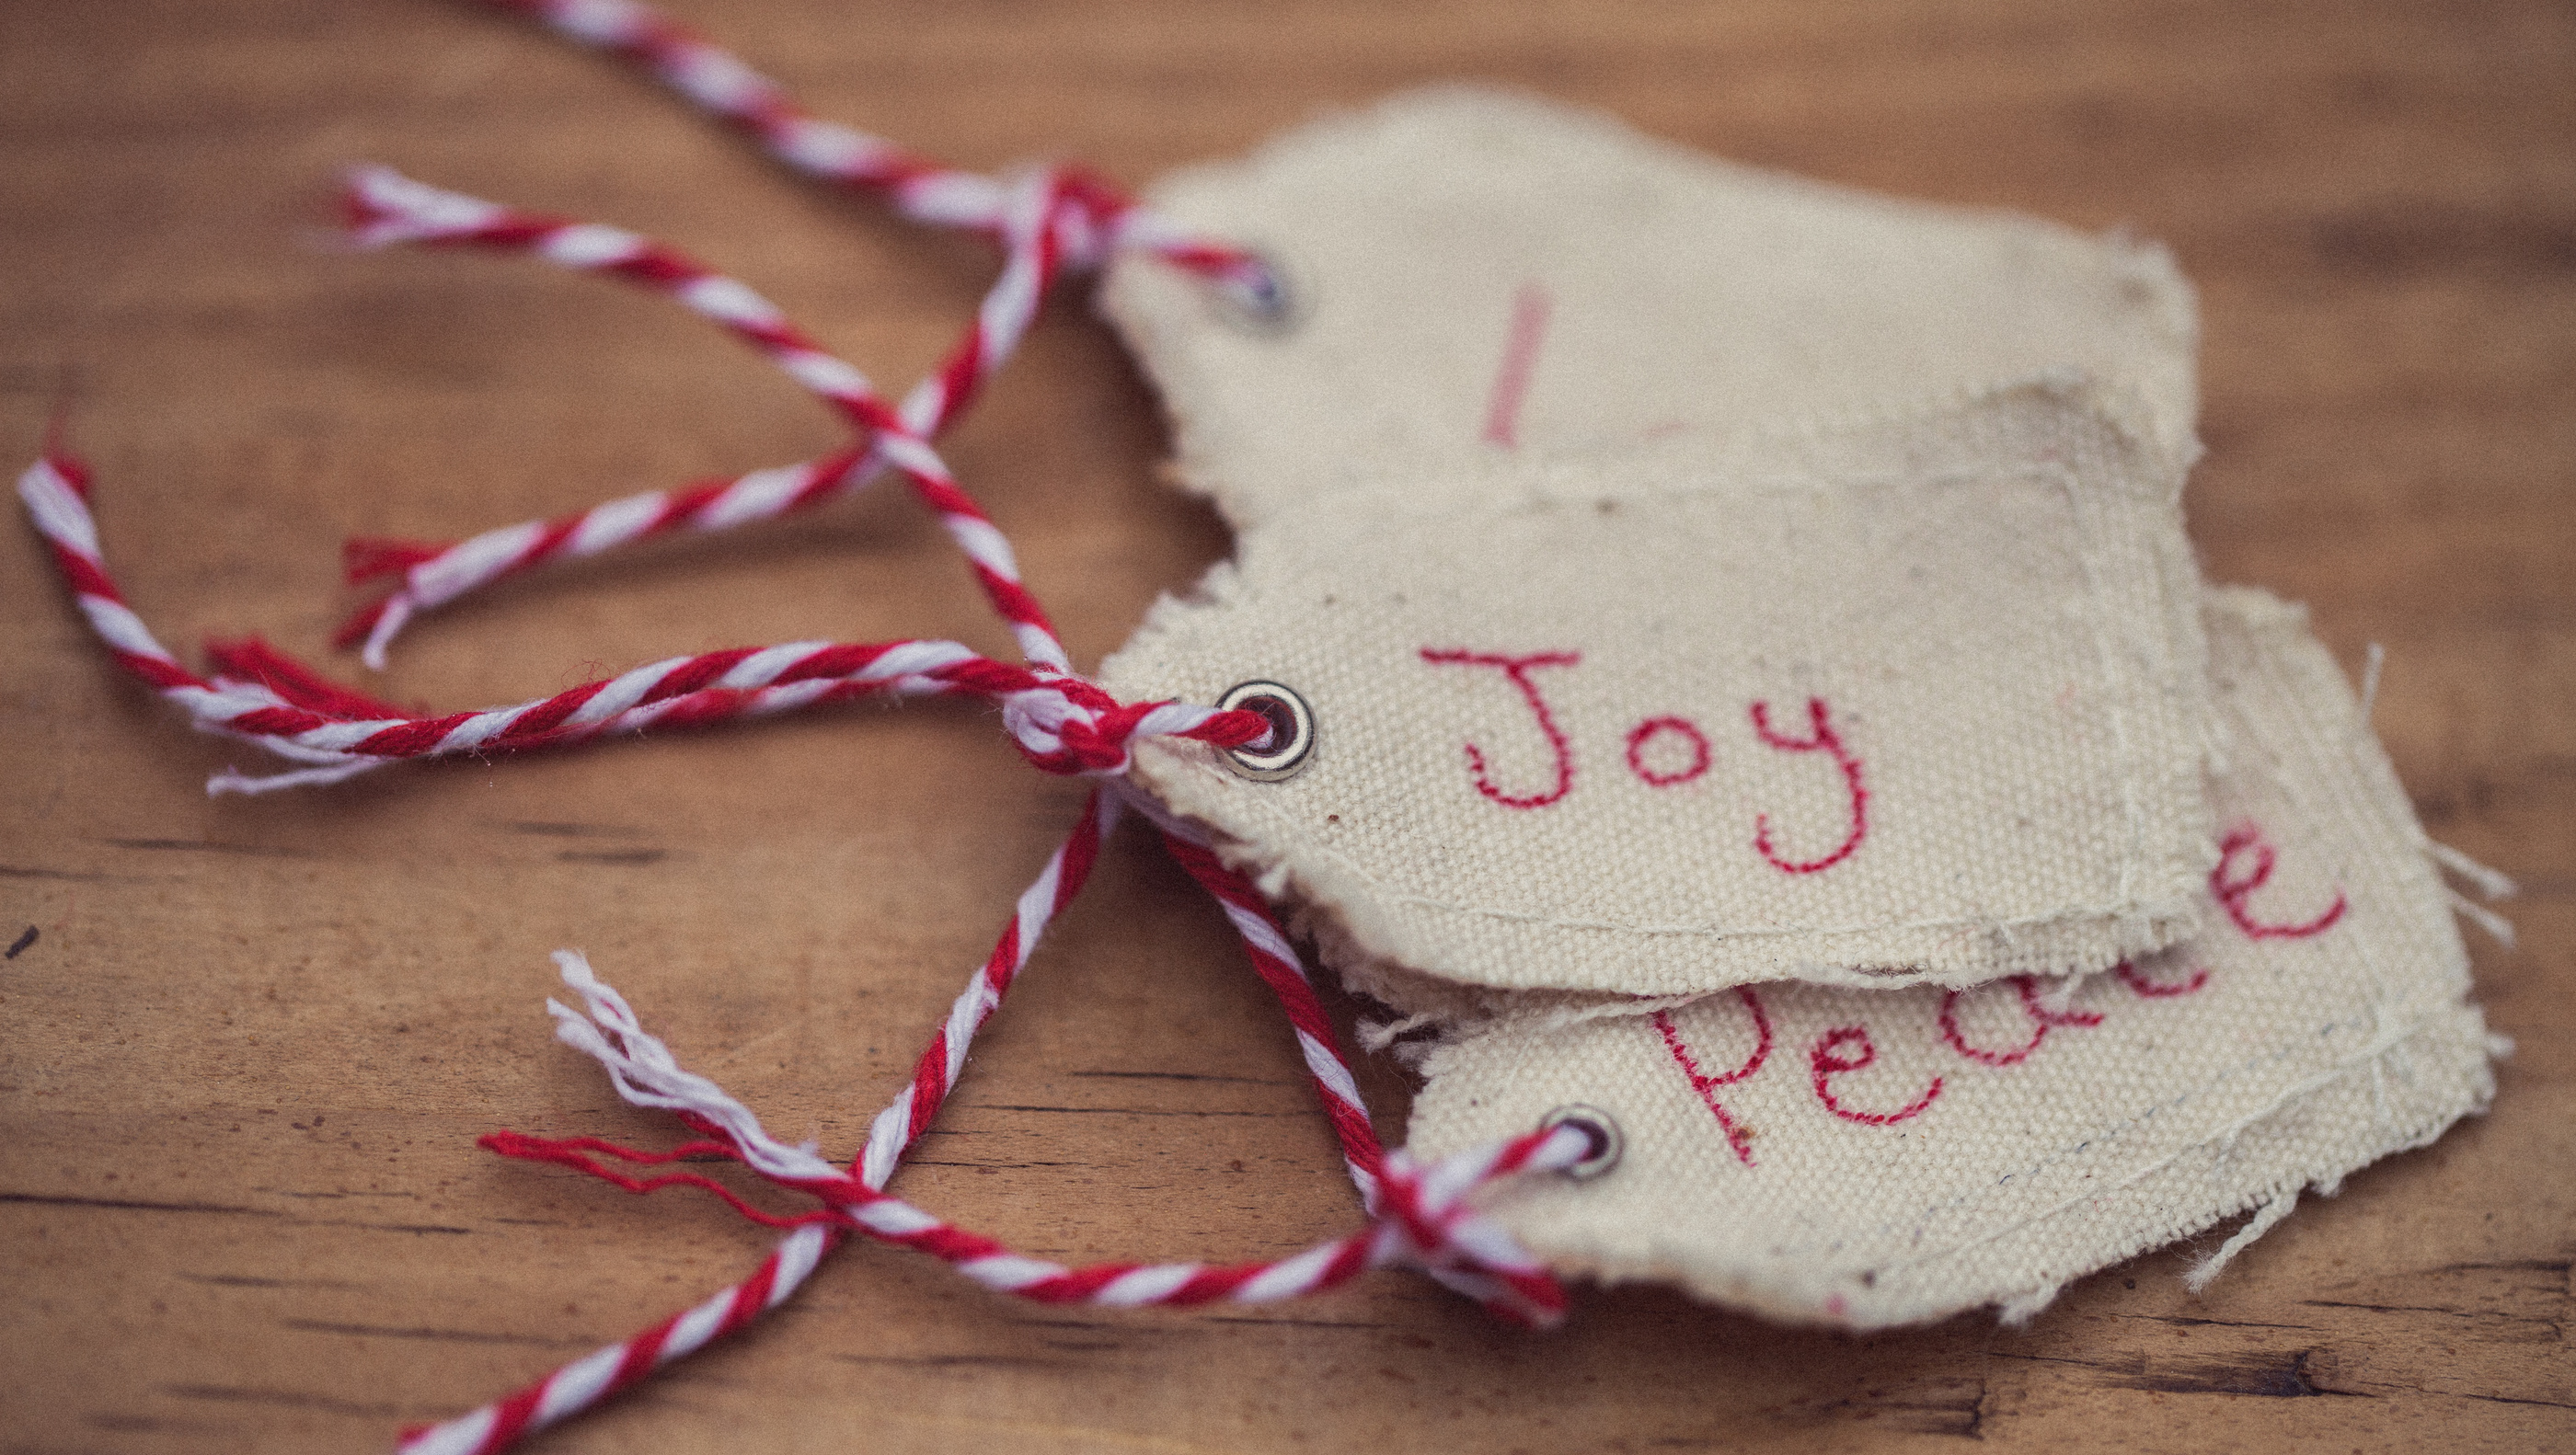 5 Bible Verses for Kids About Joy